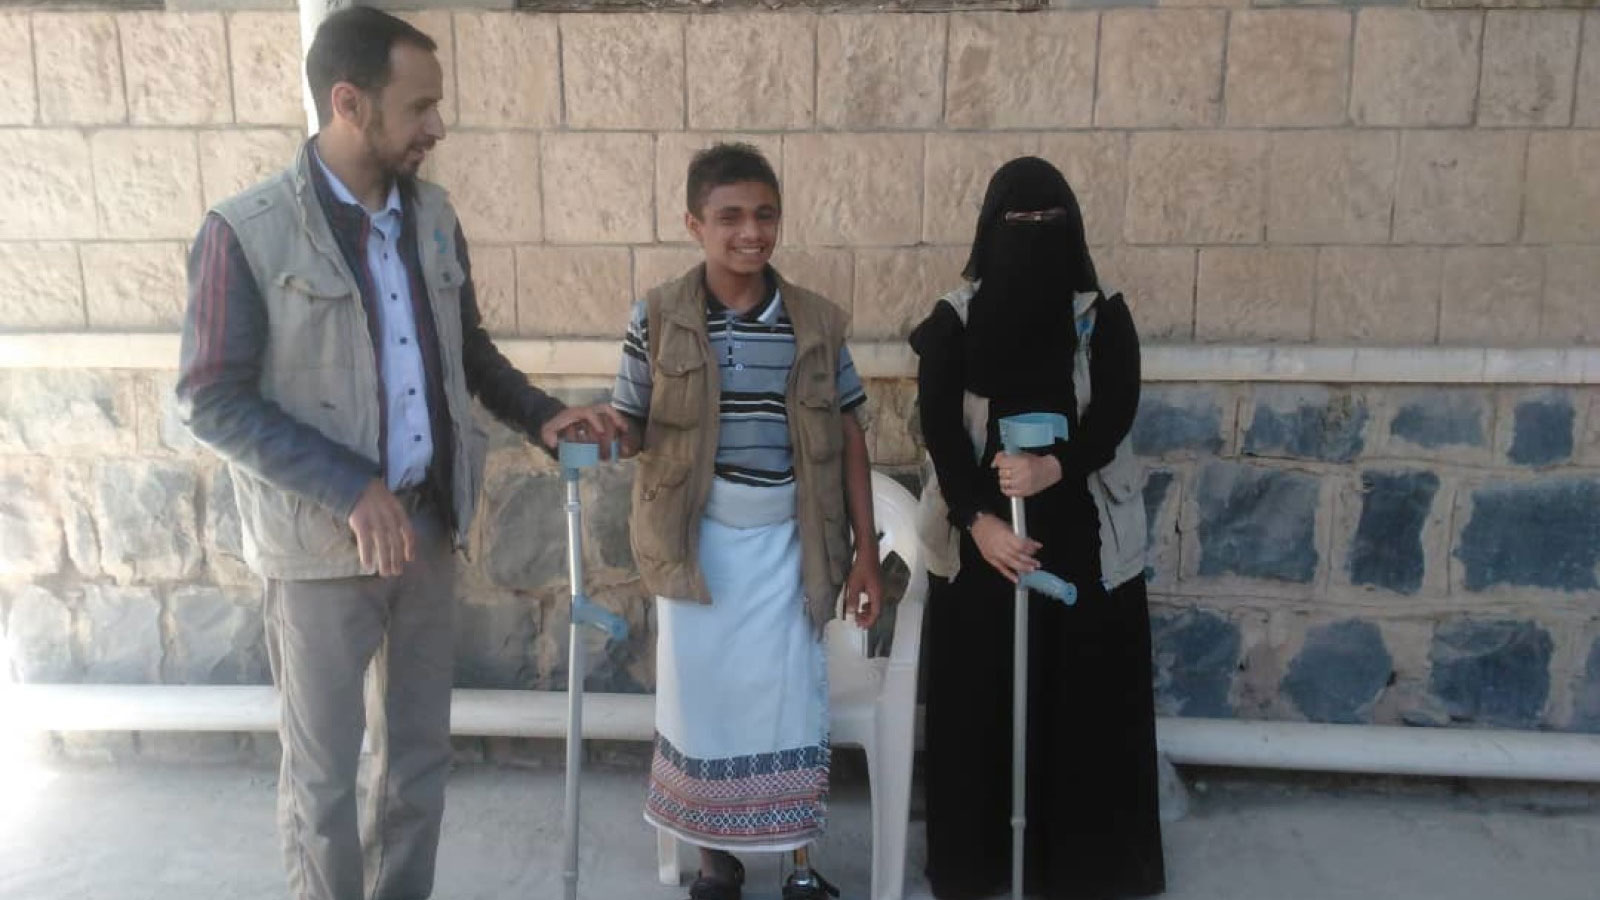 Salim -17 -receives-a-prosthetic-limb-and-physical-therapy-from-HI's-team-in-Yemen-following-a-bombing